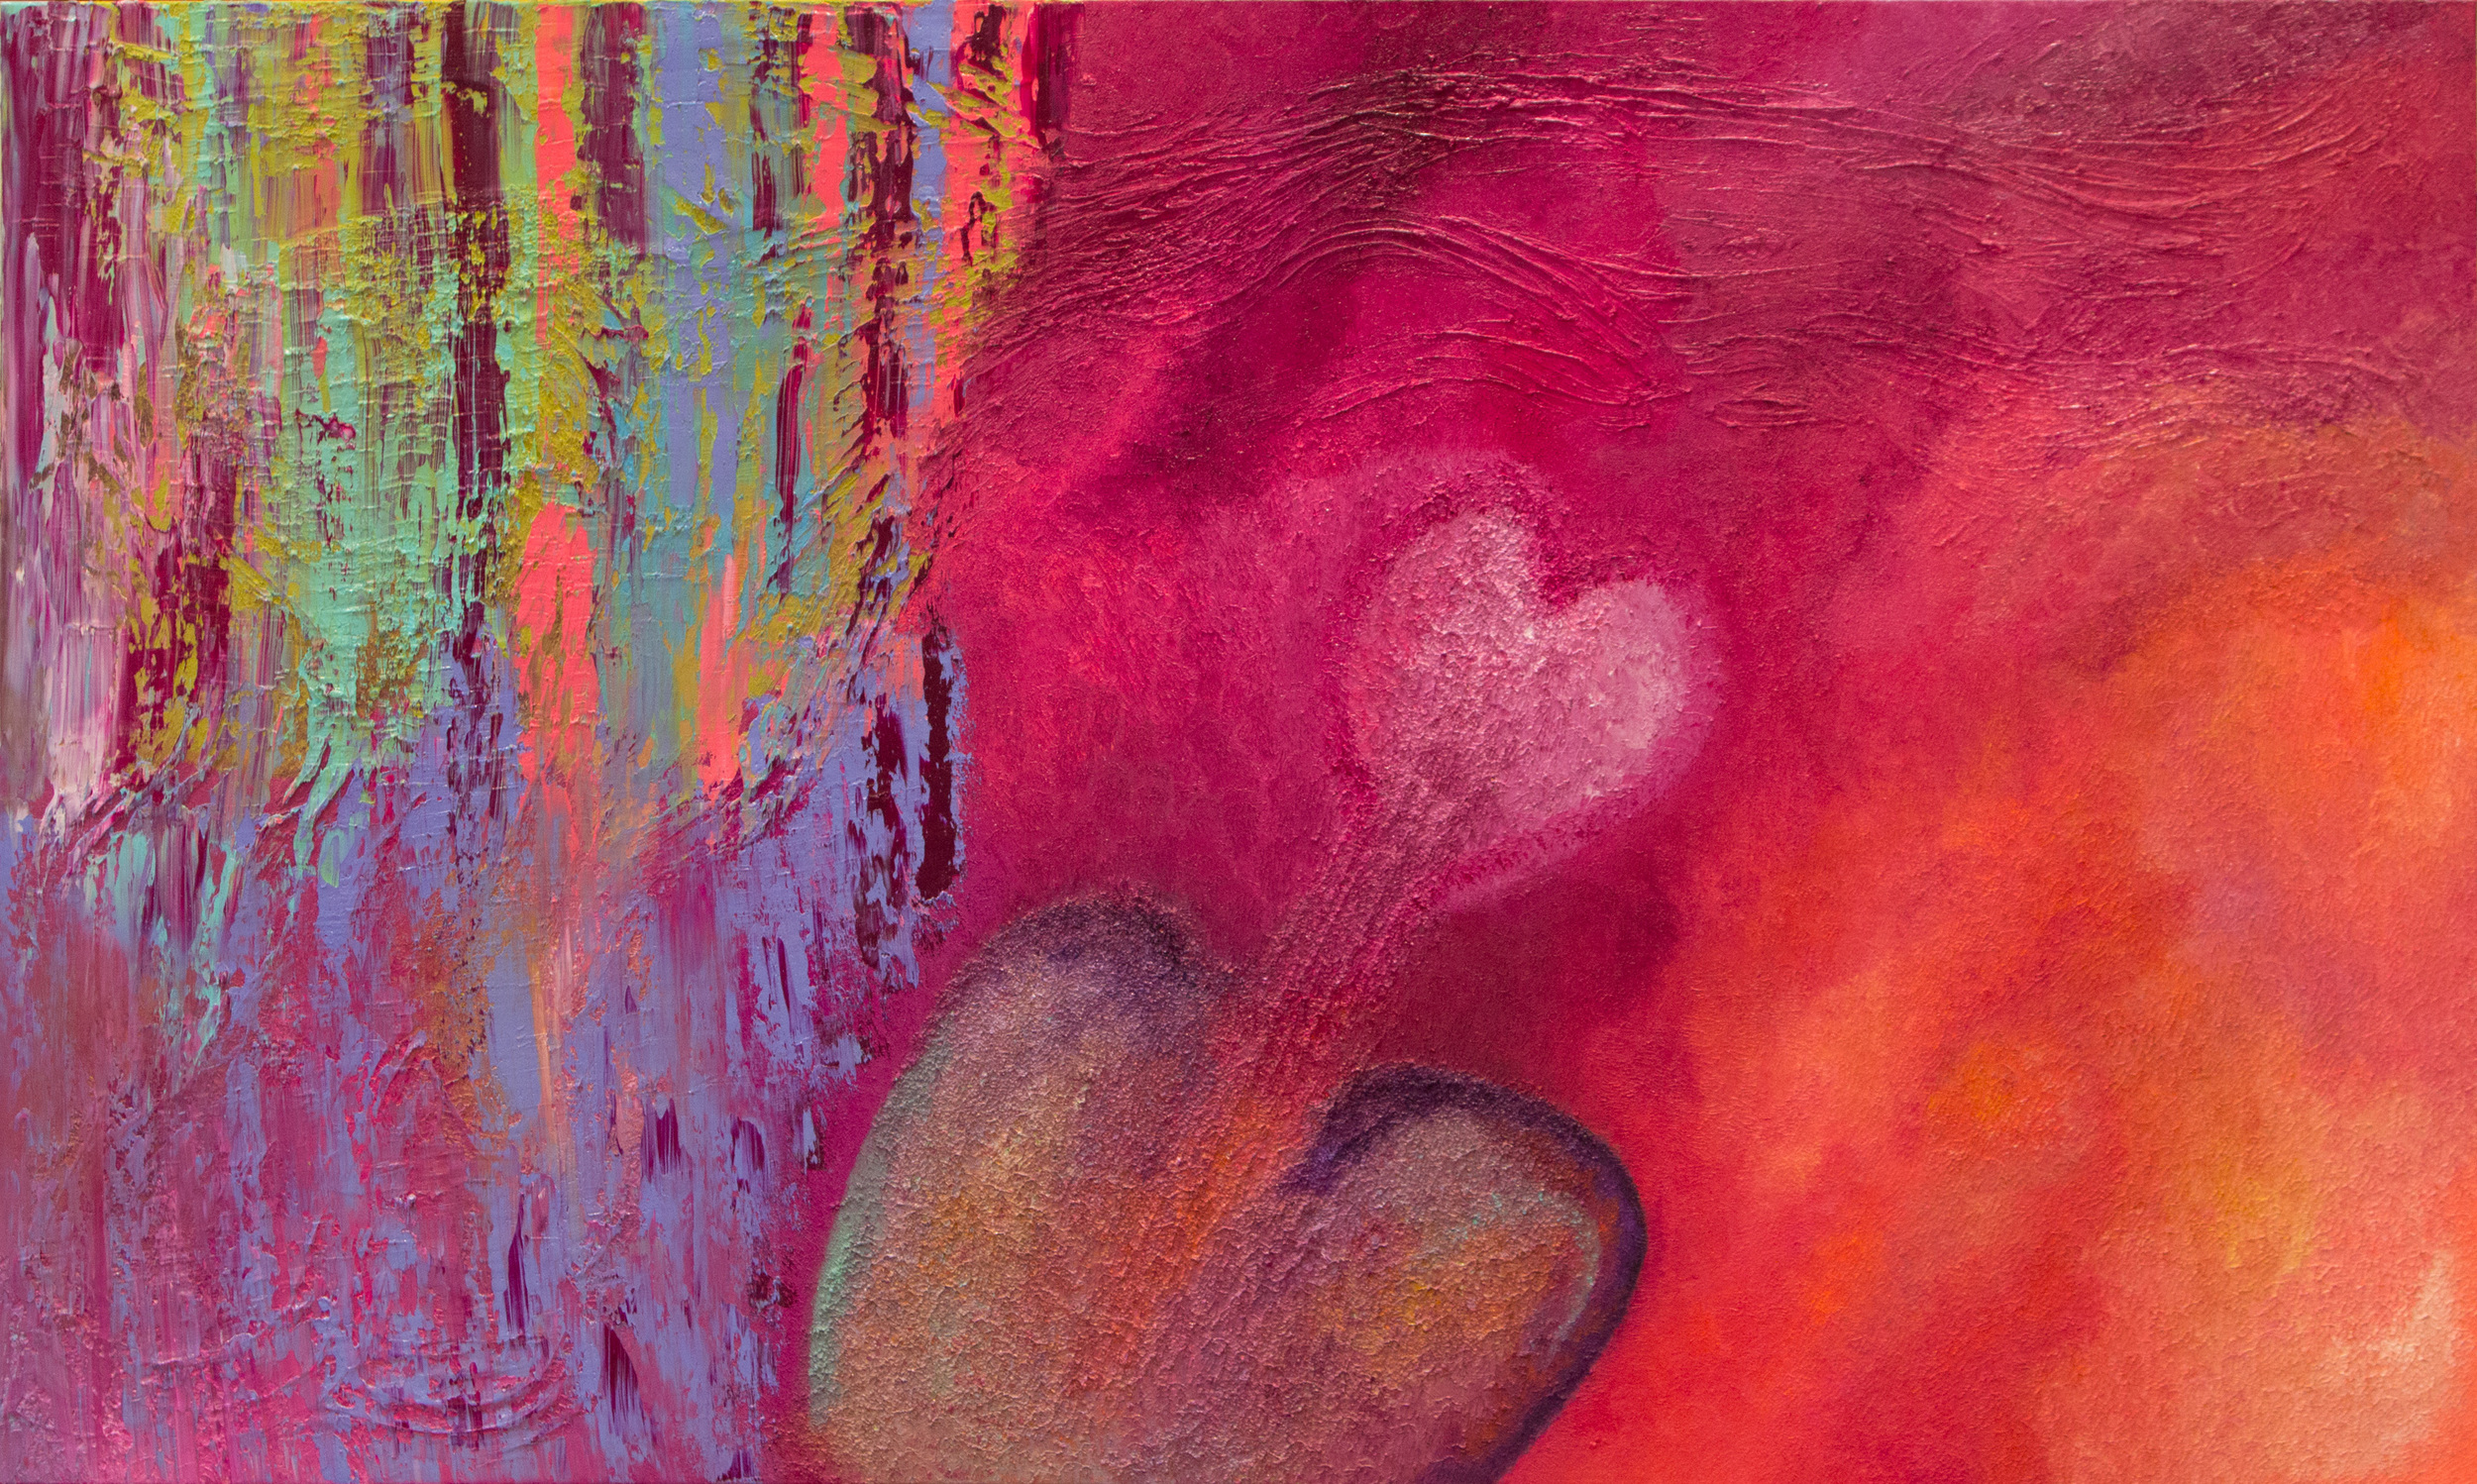 """Digging for Love    36"""" x 60"""" Oil on Canvas with Mixed Media     This romantic piece reflects the beating heart and its journey through magical portals of love inspired adventures.Digging for love symbolizes the determination of seeking a self nurturing and fulfilling path in connecting and listening to the wisdom of the inner heart."""